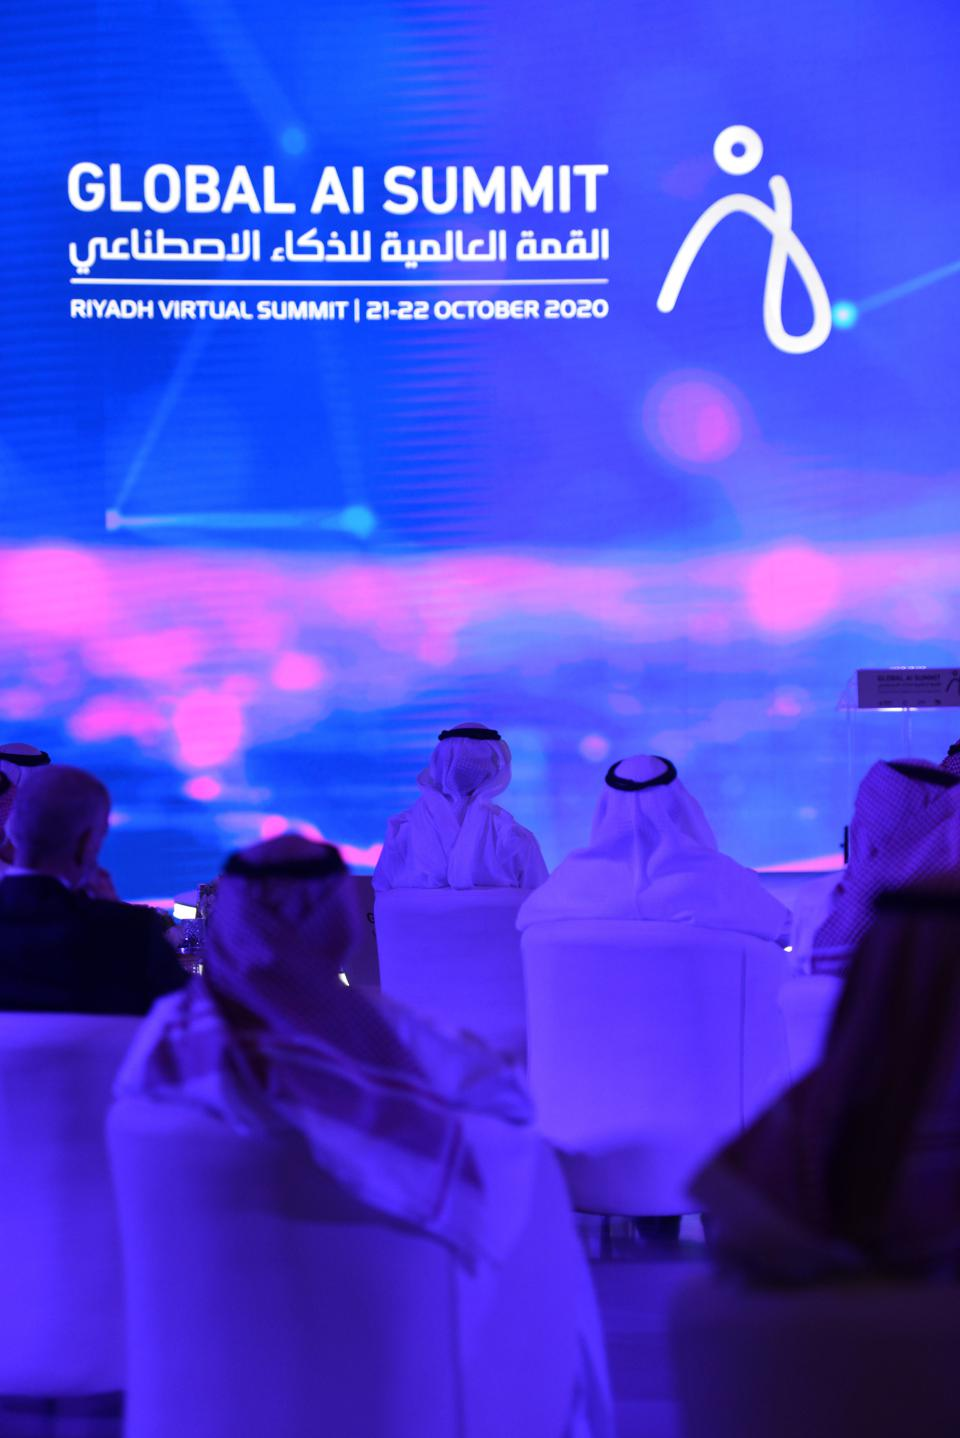 Saudi Arabia (through the Saudi Data & AI Authority or SDAIA) has become one of the largest investors in Artificial Intelligence technologies, which it is using to transform the capabilities of public agencies in the country